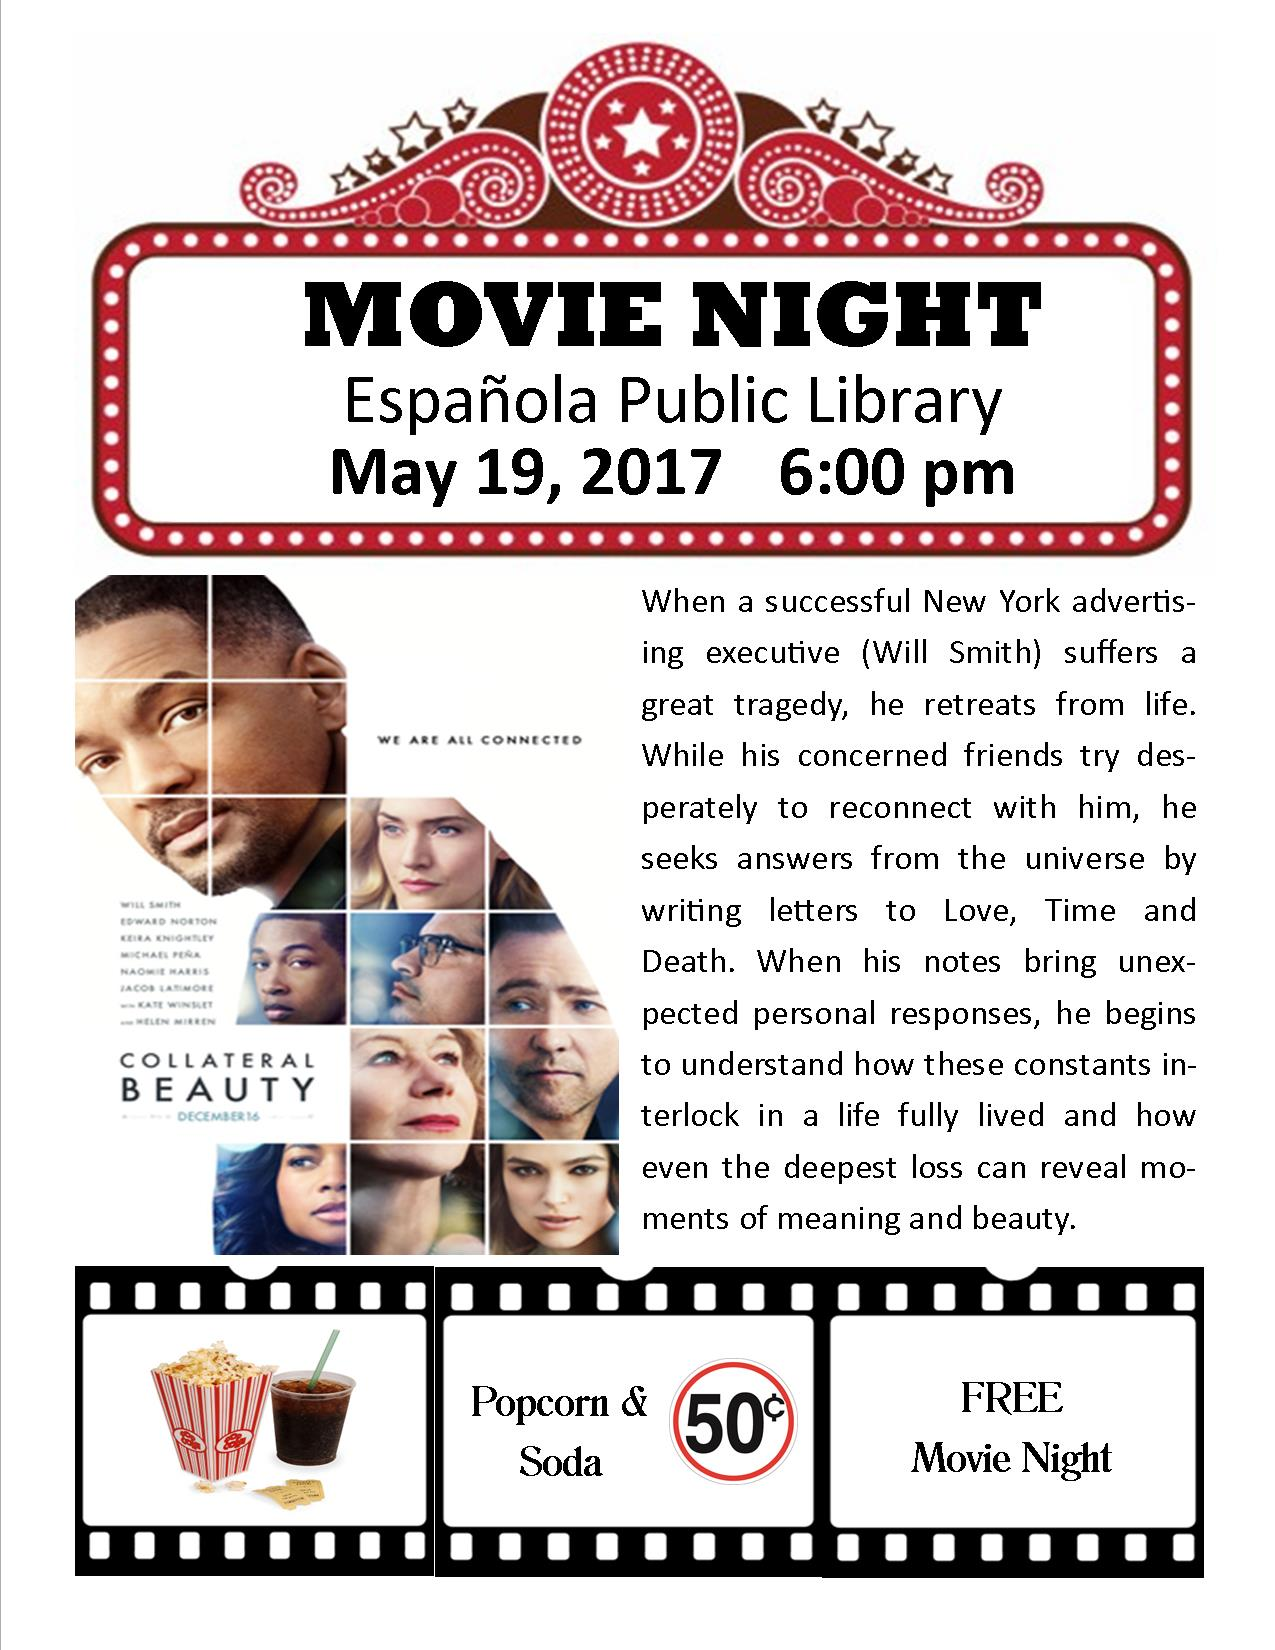 MovieNightMay2017